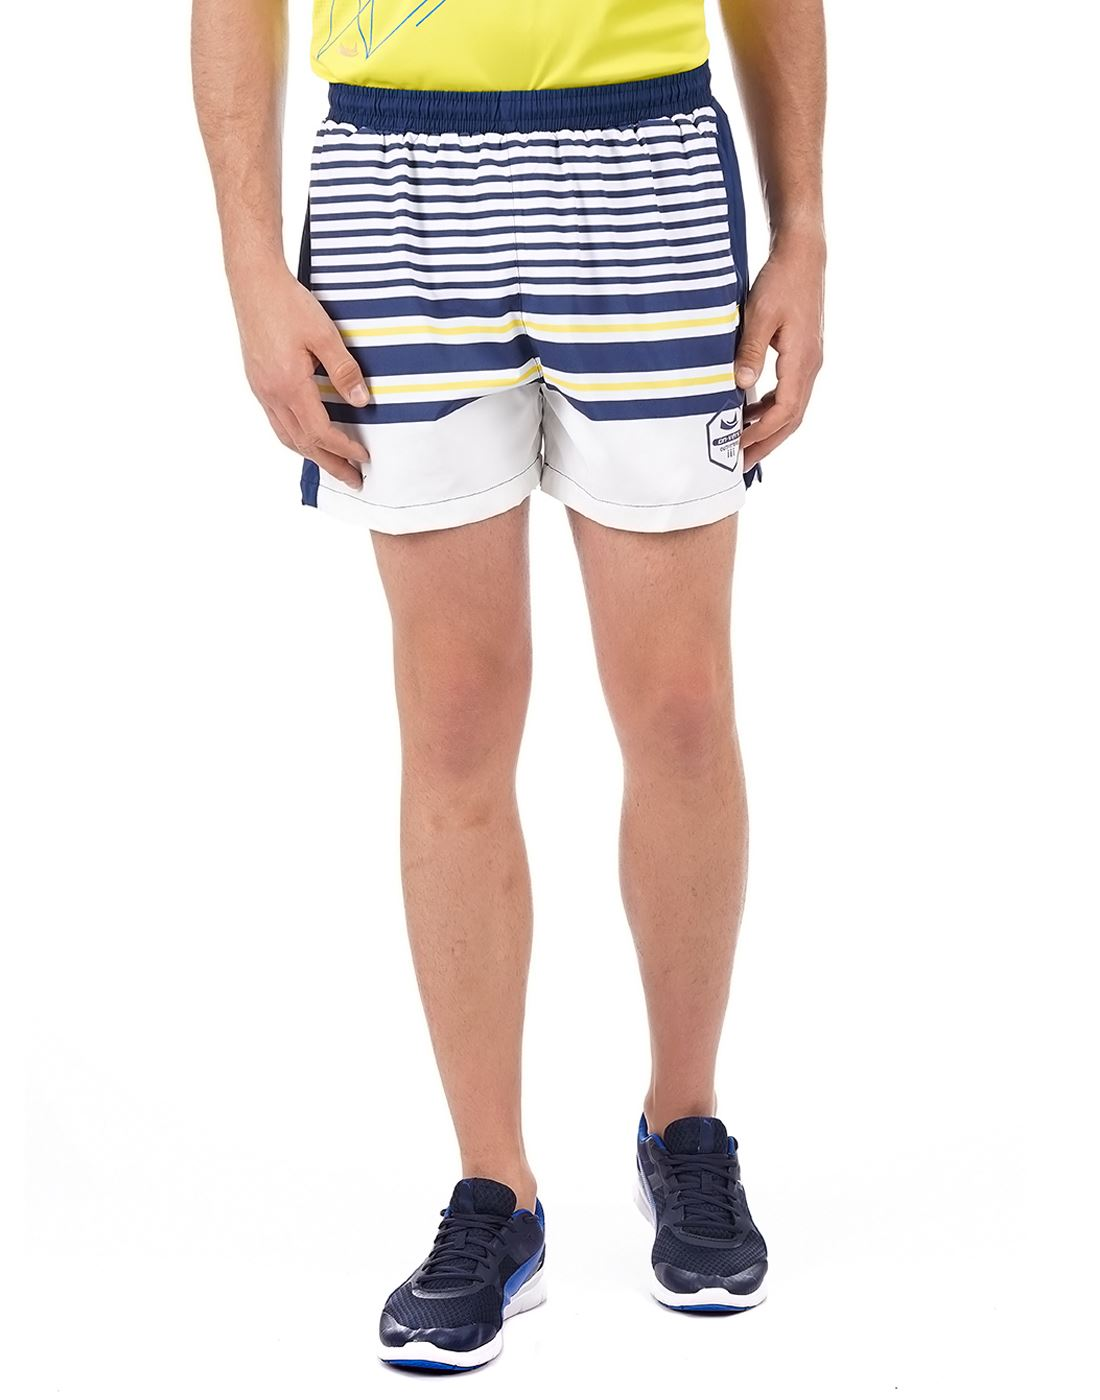 On-Vers Sports Wear Striped Shorts